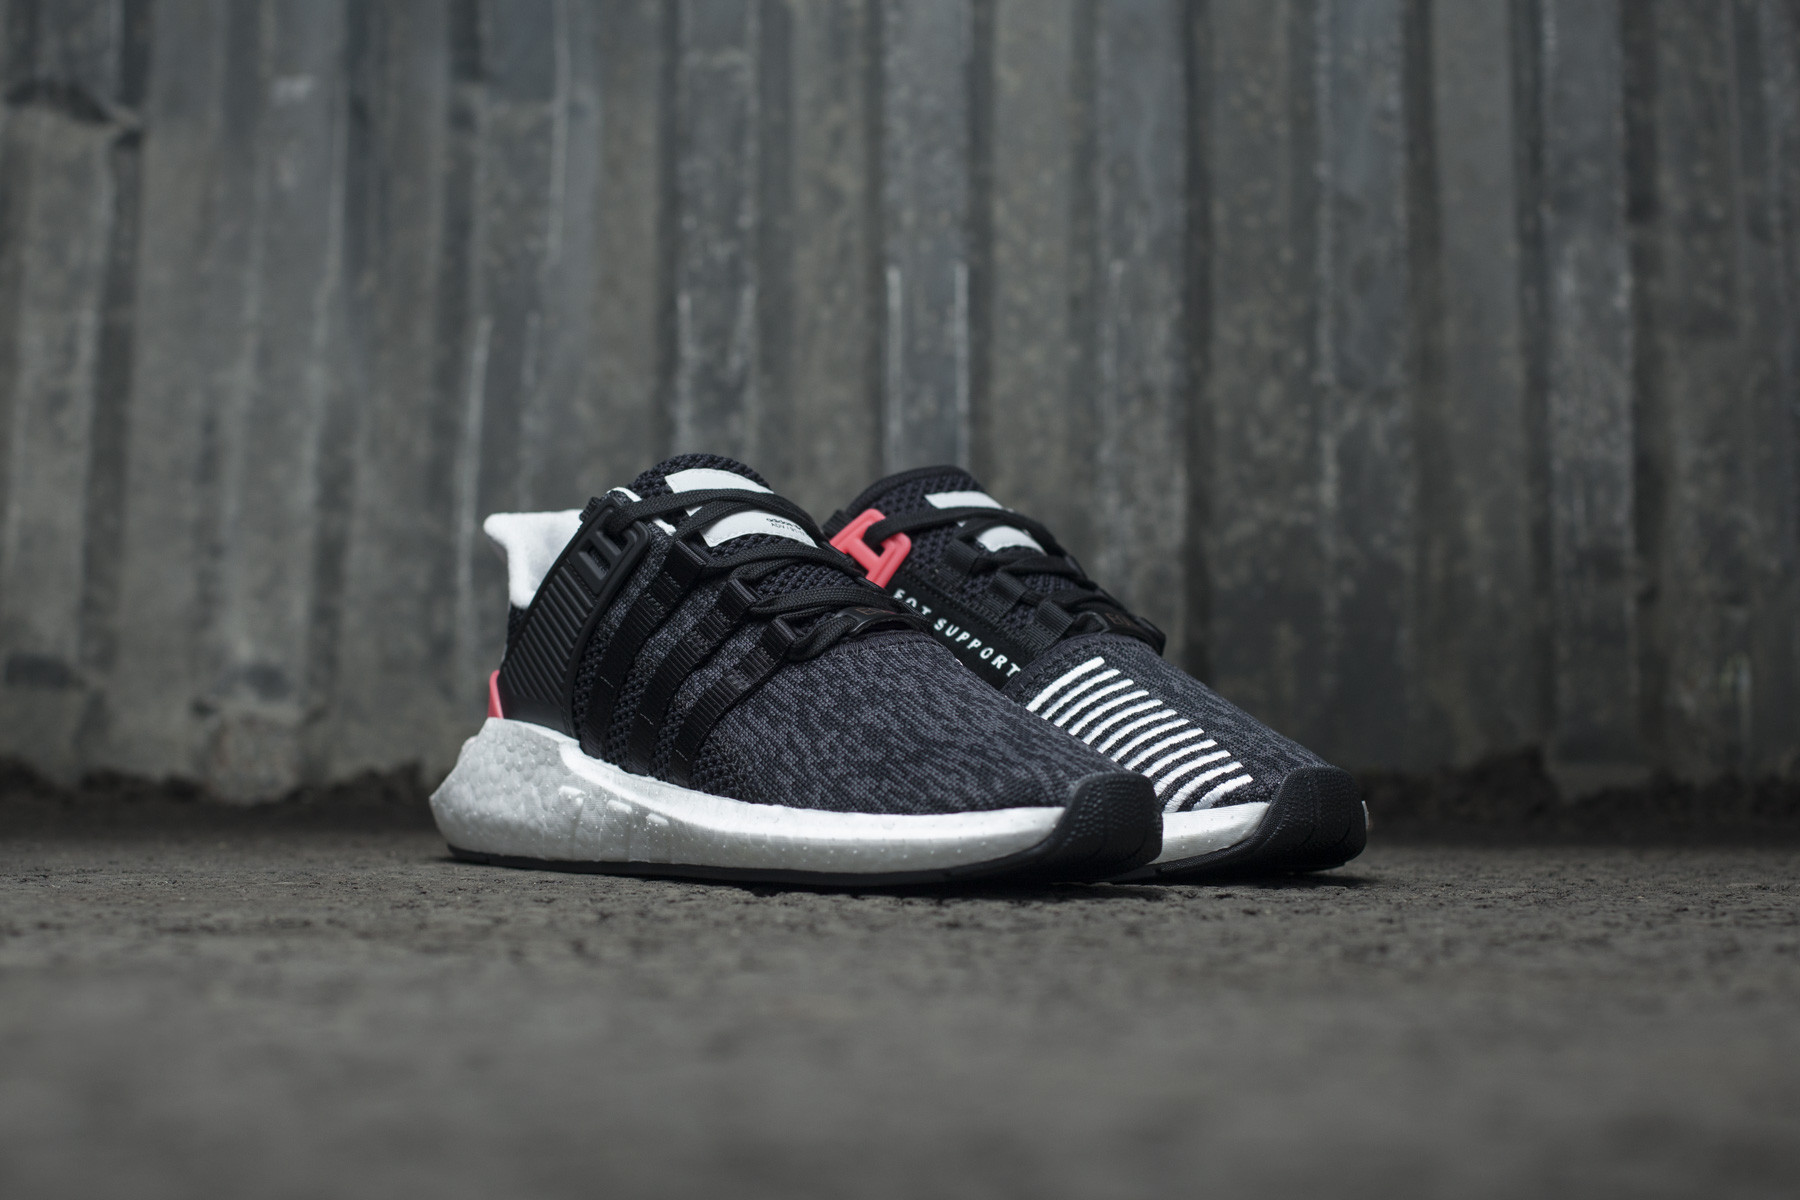 adidas eqt running support 93 boost